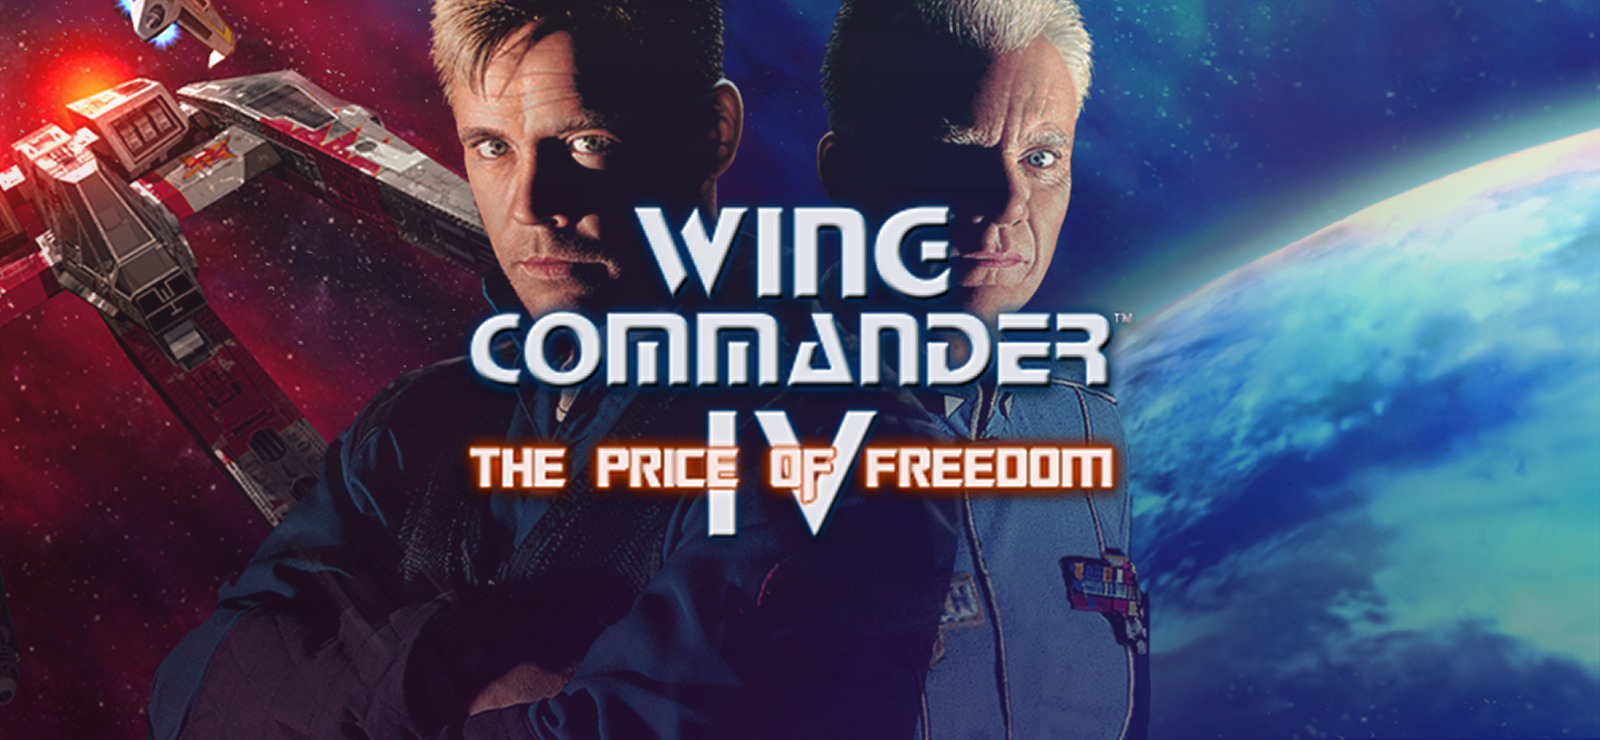 Wing Commander 4 The Price Of Freedom On Gog Com